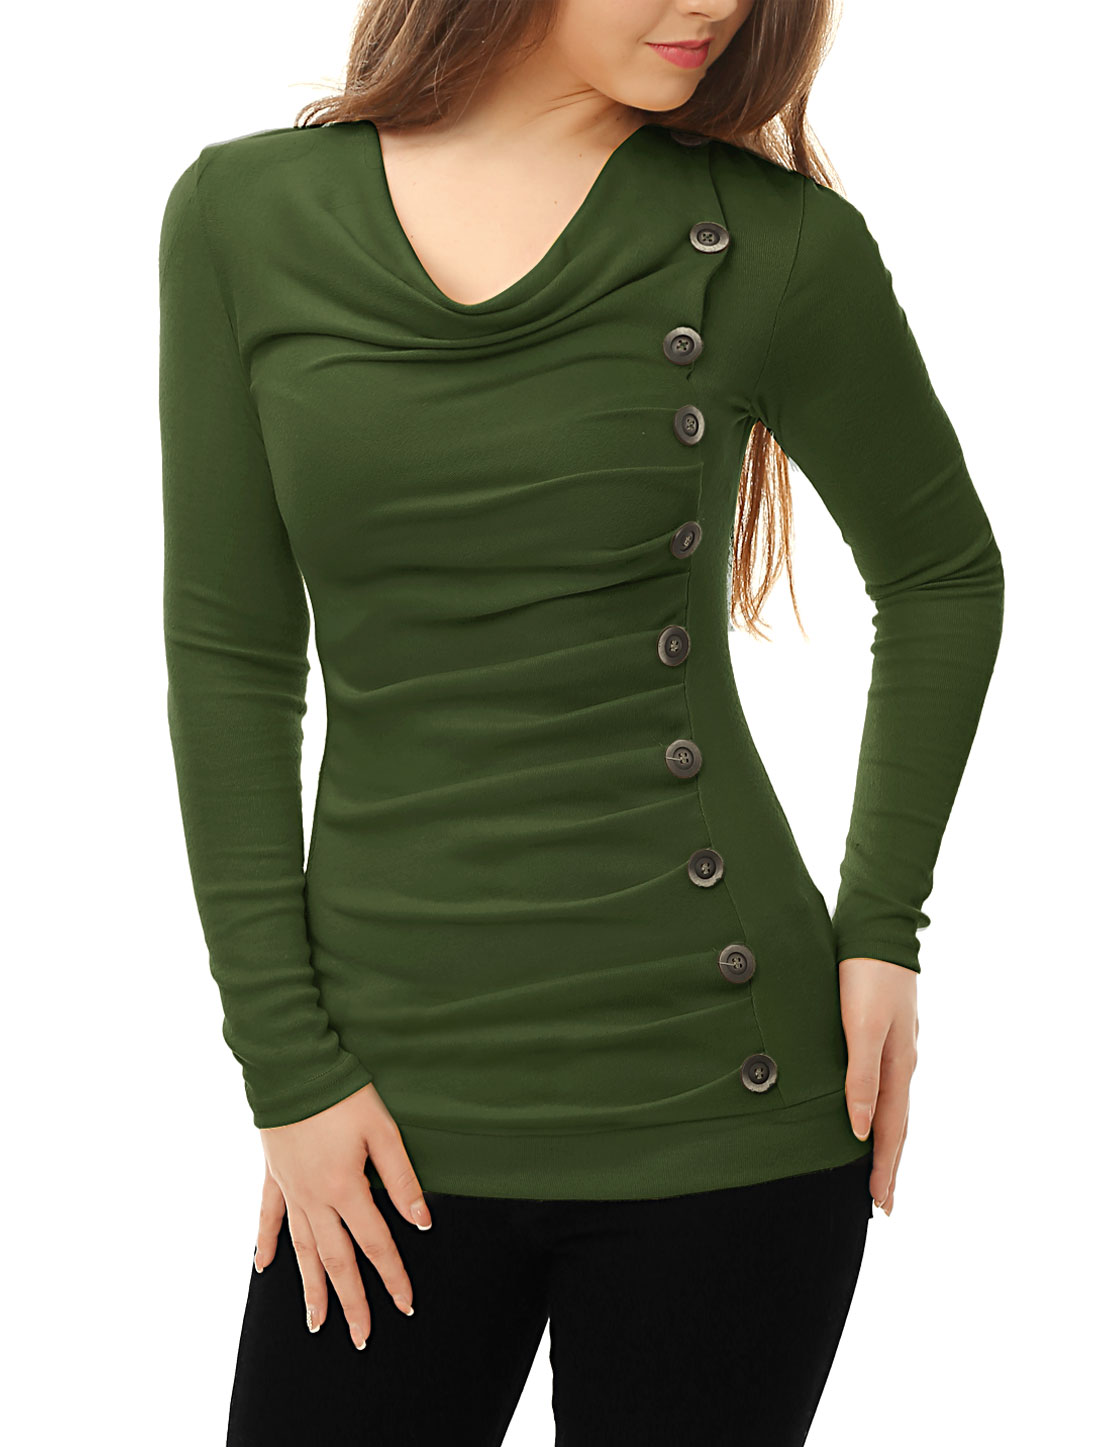 Women Cowl Neck Long Sleeves Buttons Decor Ruched Top Green XL